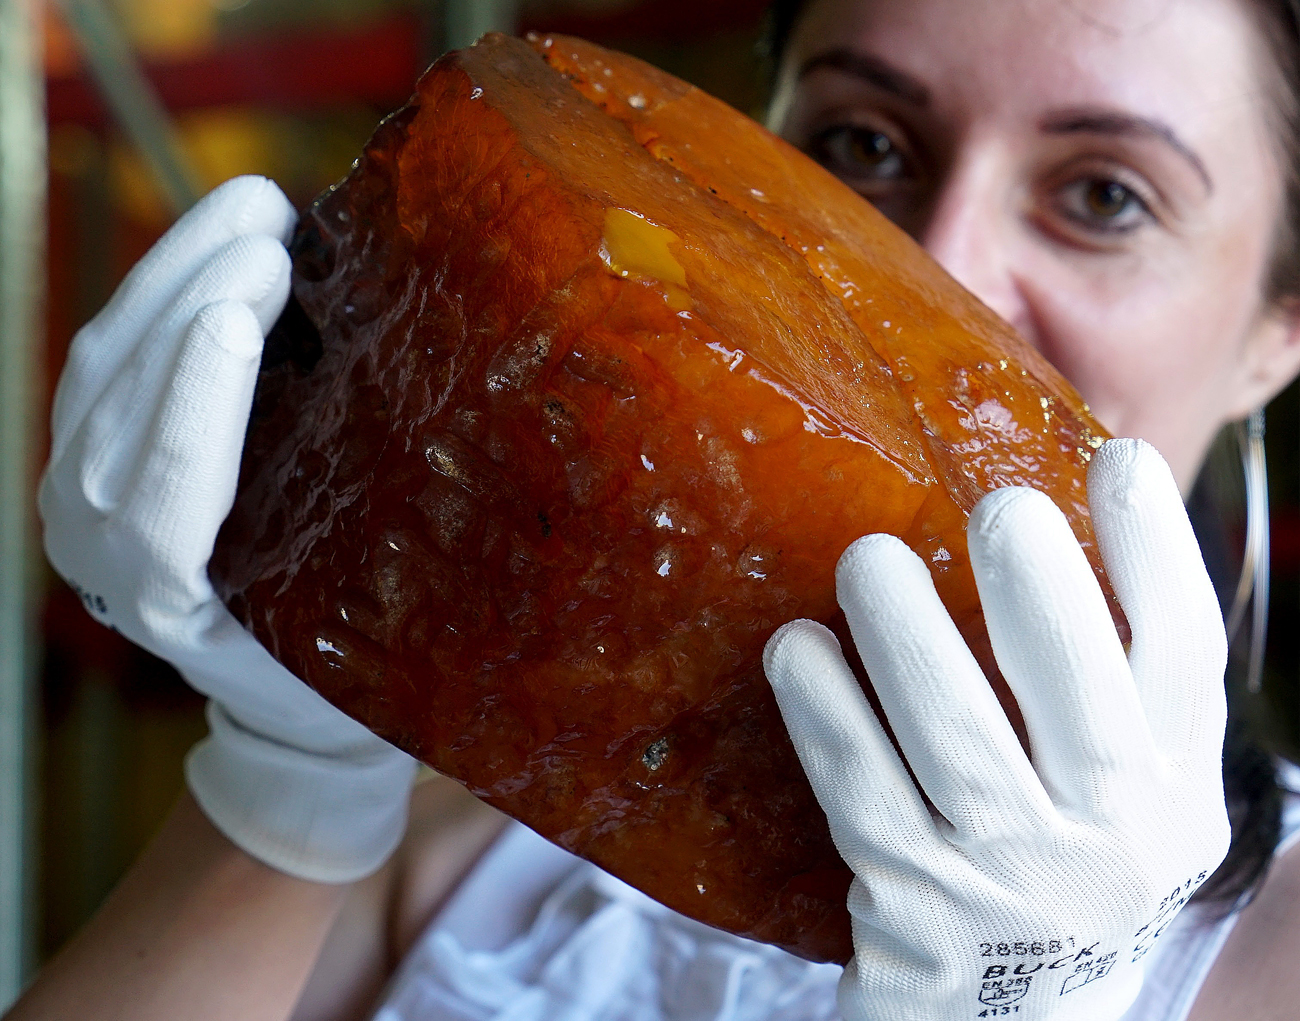 An employee of the Museum of the Kaliningrad Amber Plant shows amber nugget weighing 2.7 kilograms, July 2016. New amber mined on March 6, 2017 weighs 3.2 kilograms.